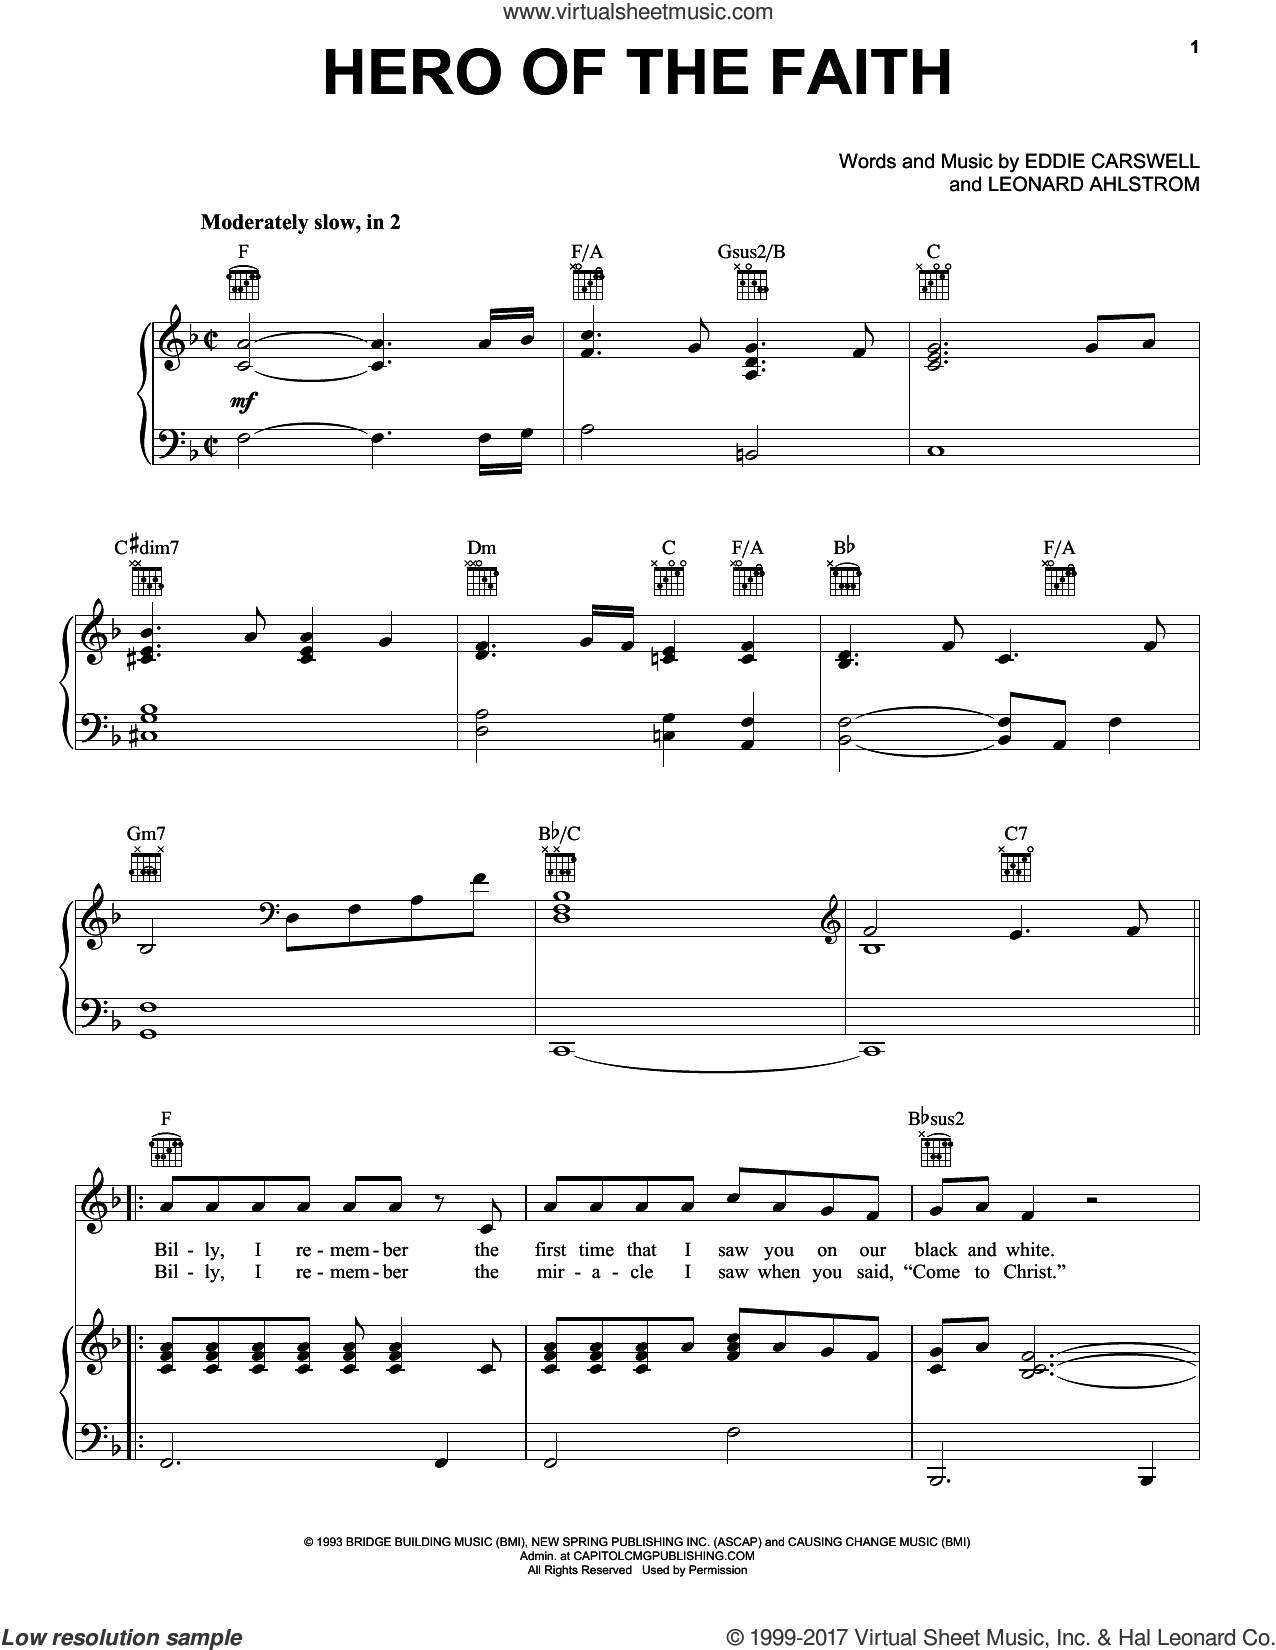 Hero Of The Faith sheet music for voice, piano or guitar by Newsong, Eddie Carswell and Leonard Ahlstrom, intermediate skill level